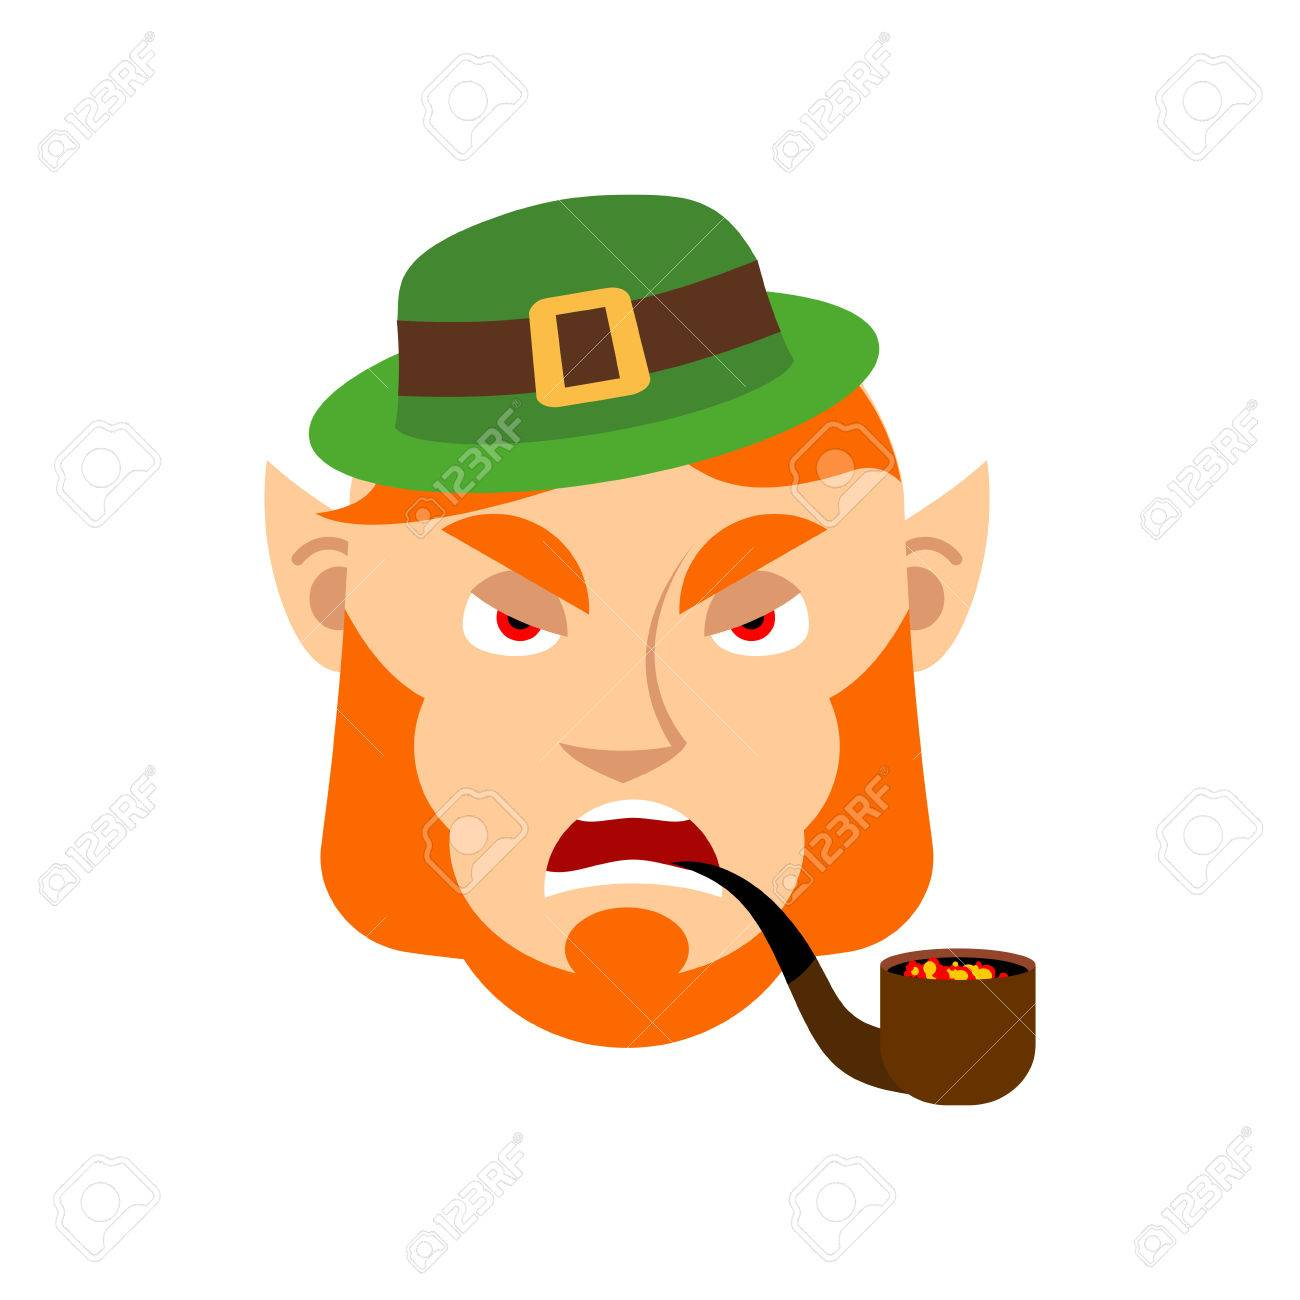 1300x1300 Leprechaun Angry. Dwarf With Red Beard Aggressive Emoji. Irish